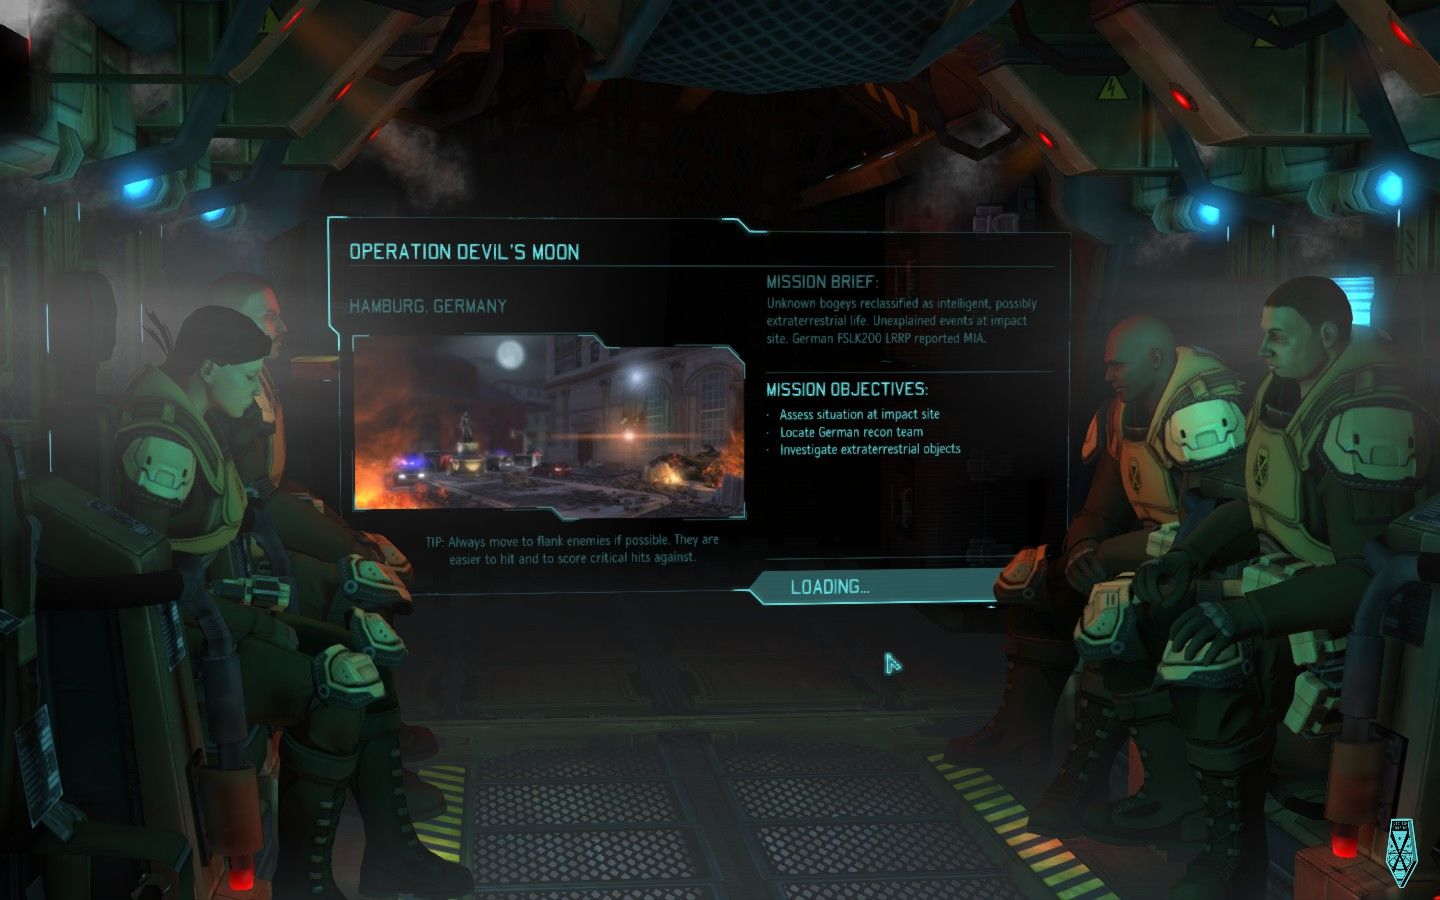 XCOM: Enemy Unknown Windows First mission objectives